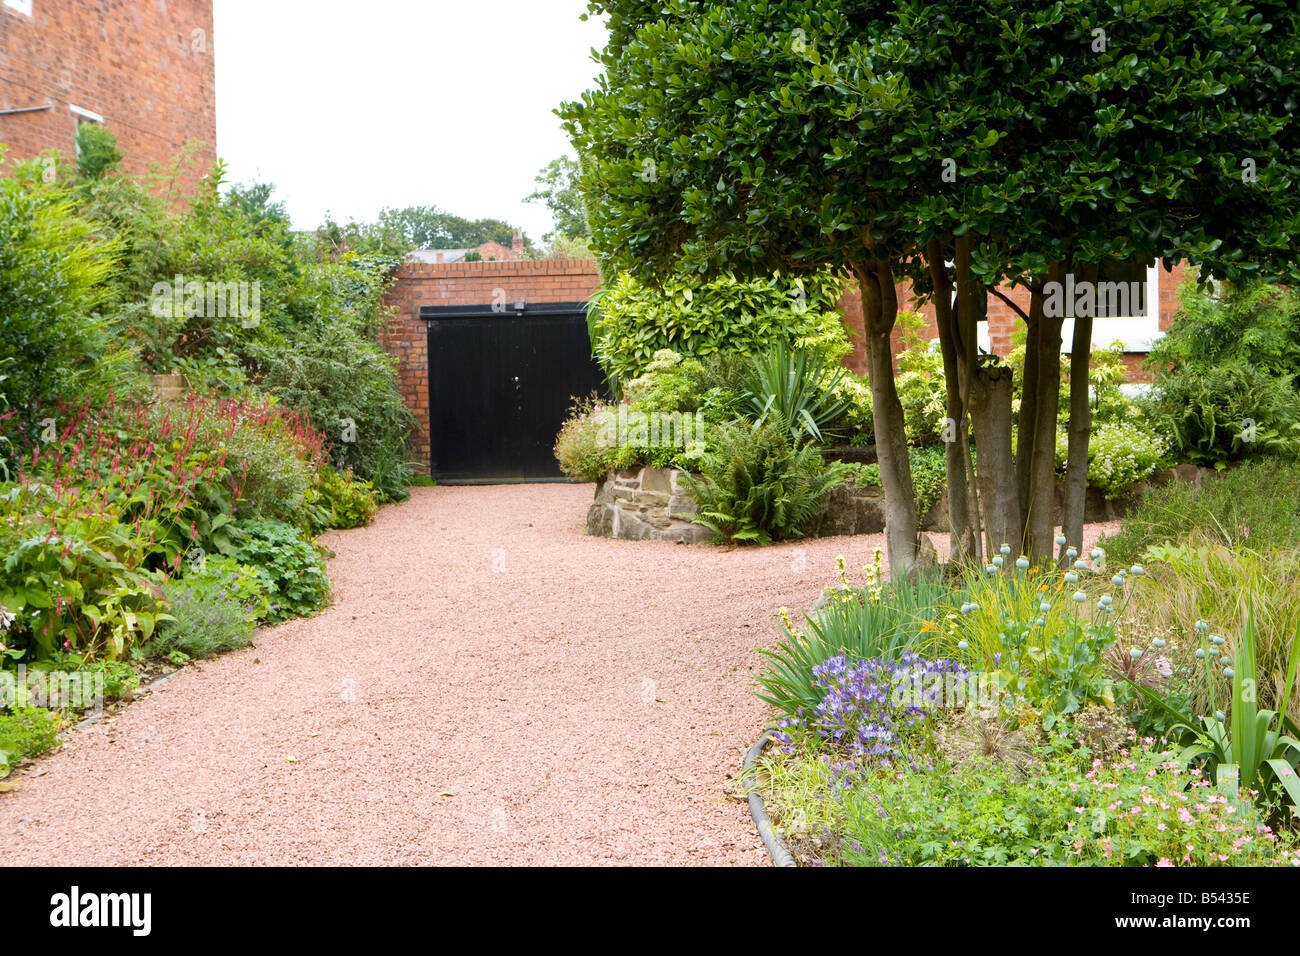 gravel driveway stockfotos gravel driveway bilder alamy. Black Bedroom Furniture Sets. Home Design Ideas